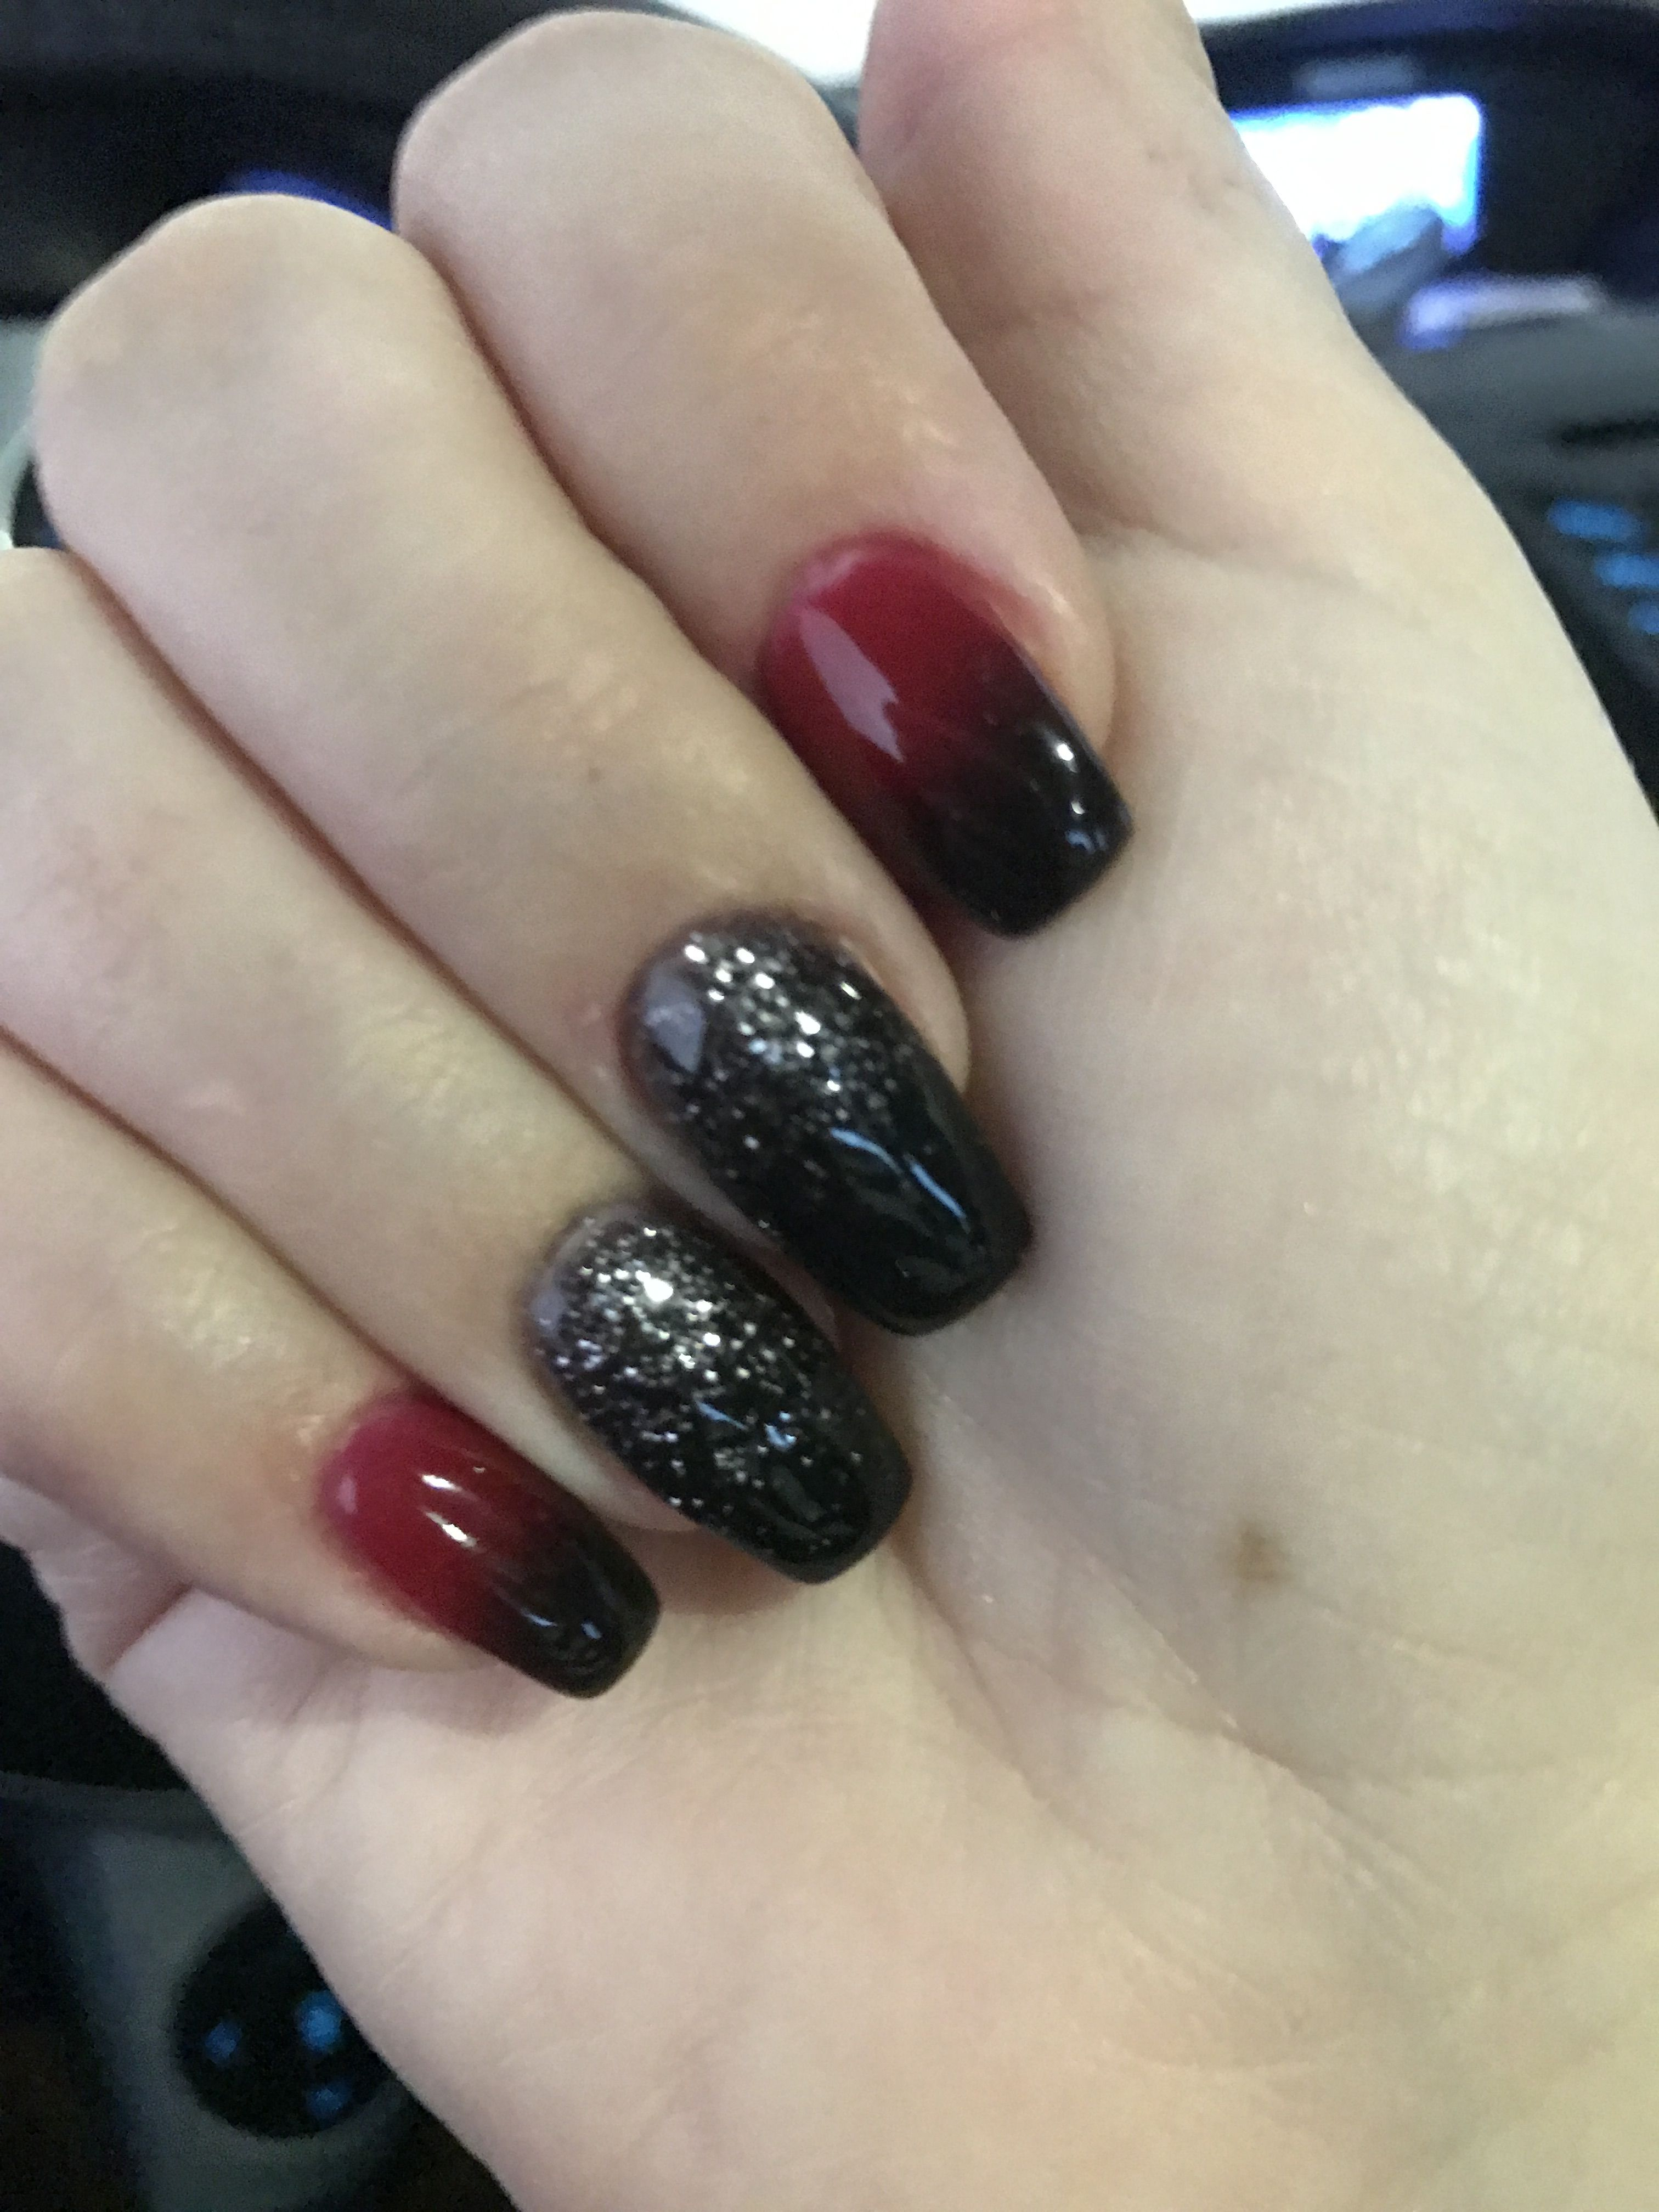 Nexgen Halloween Nails Black Red Ombre And Black Black W Silver Glitter Ombre Red Ombre Nails Halloween Nails Black Ombre Nails